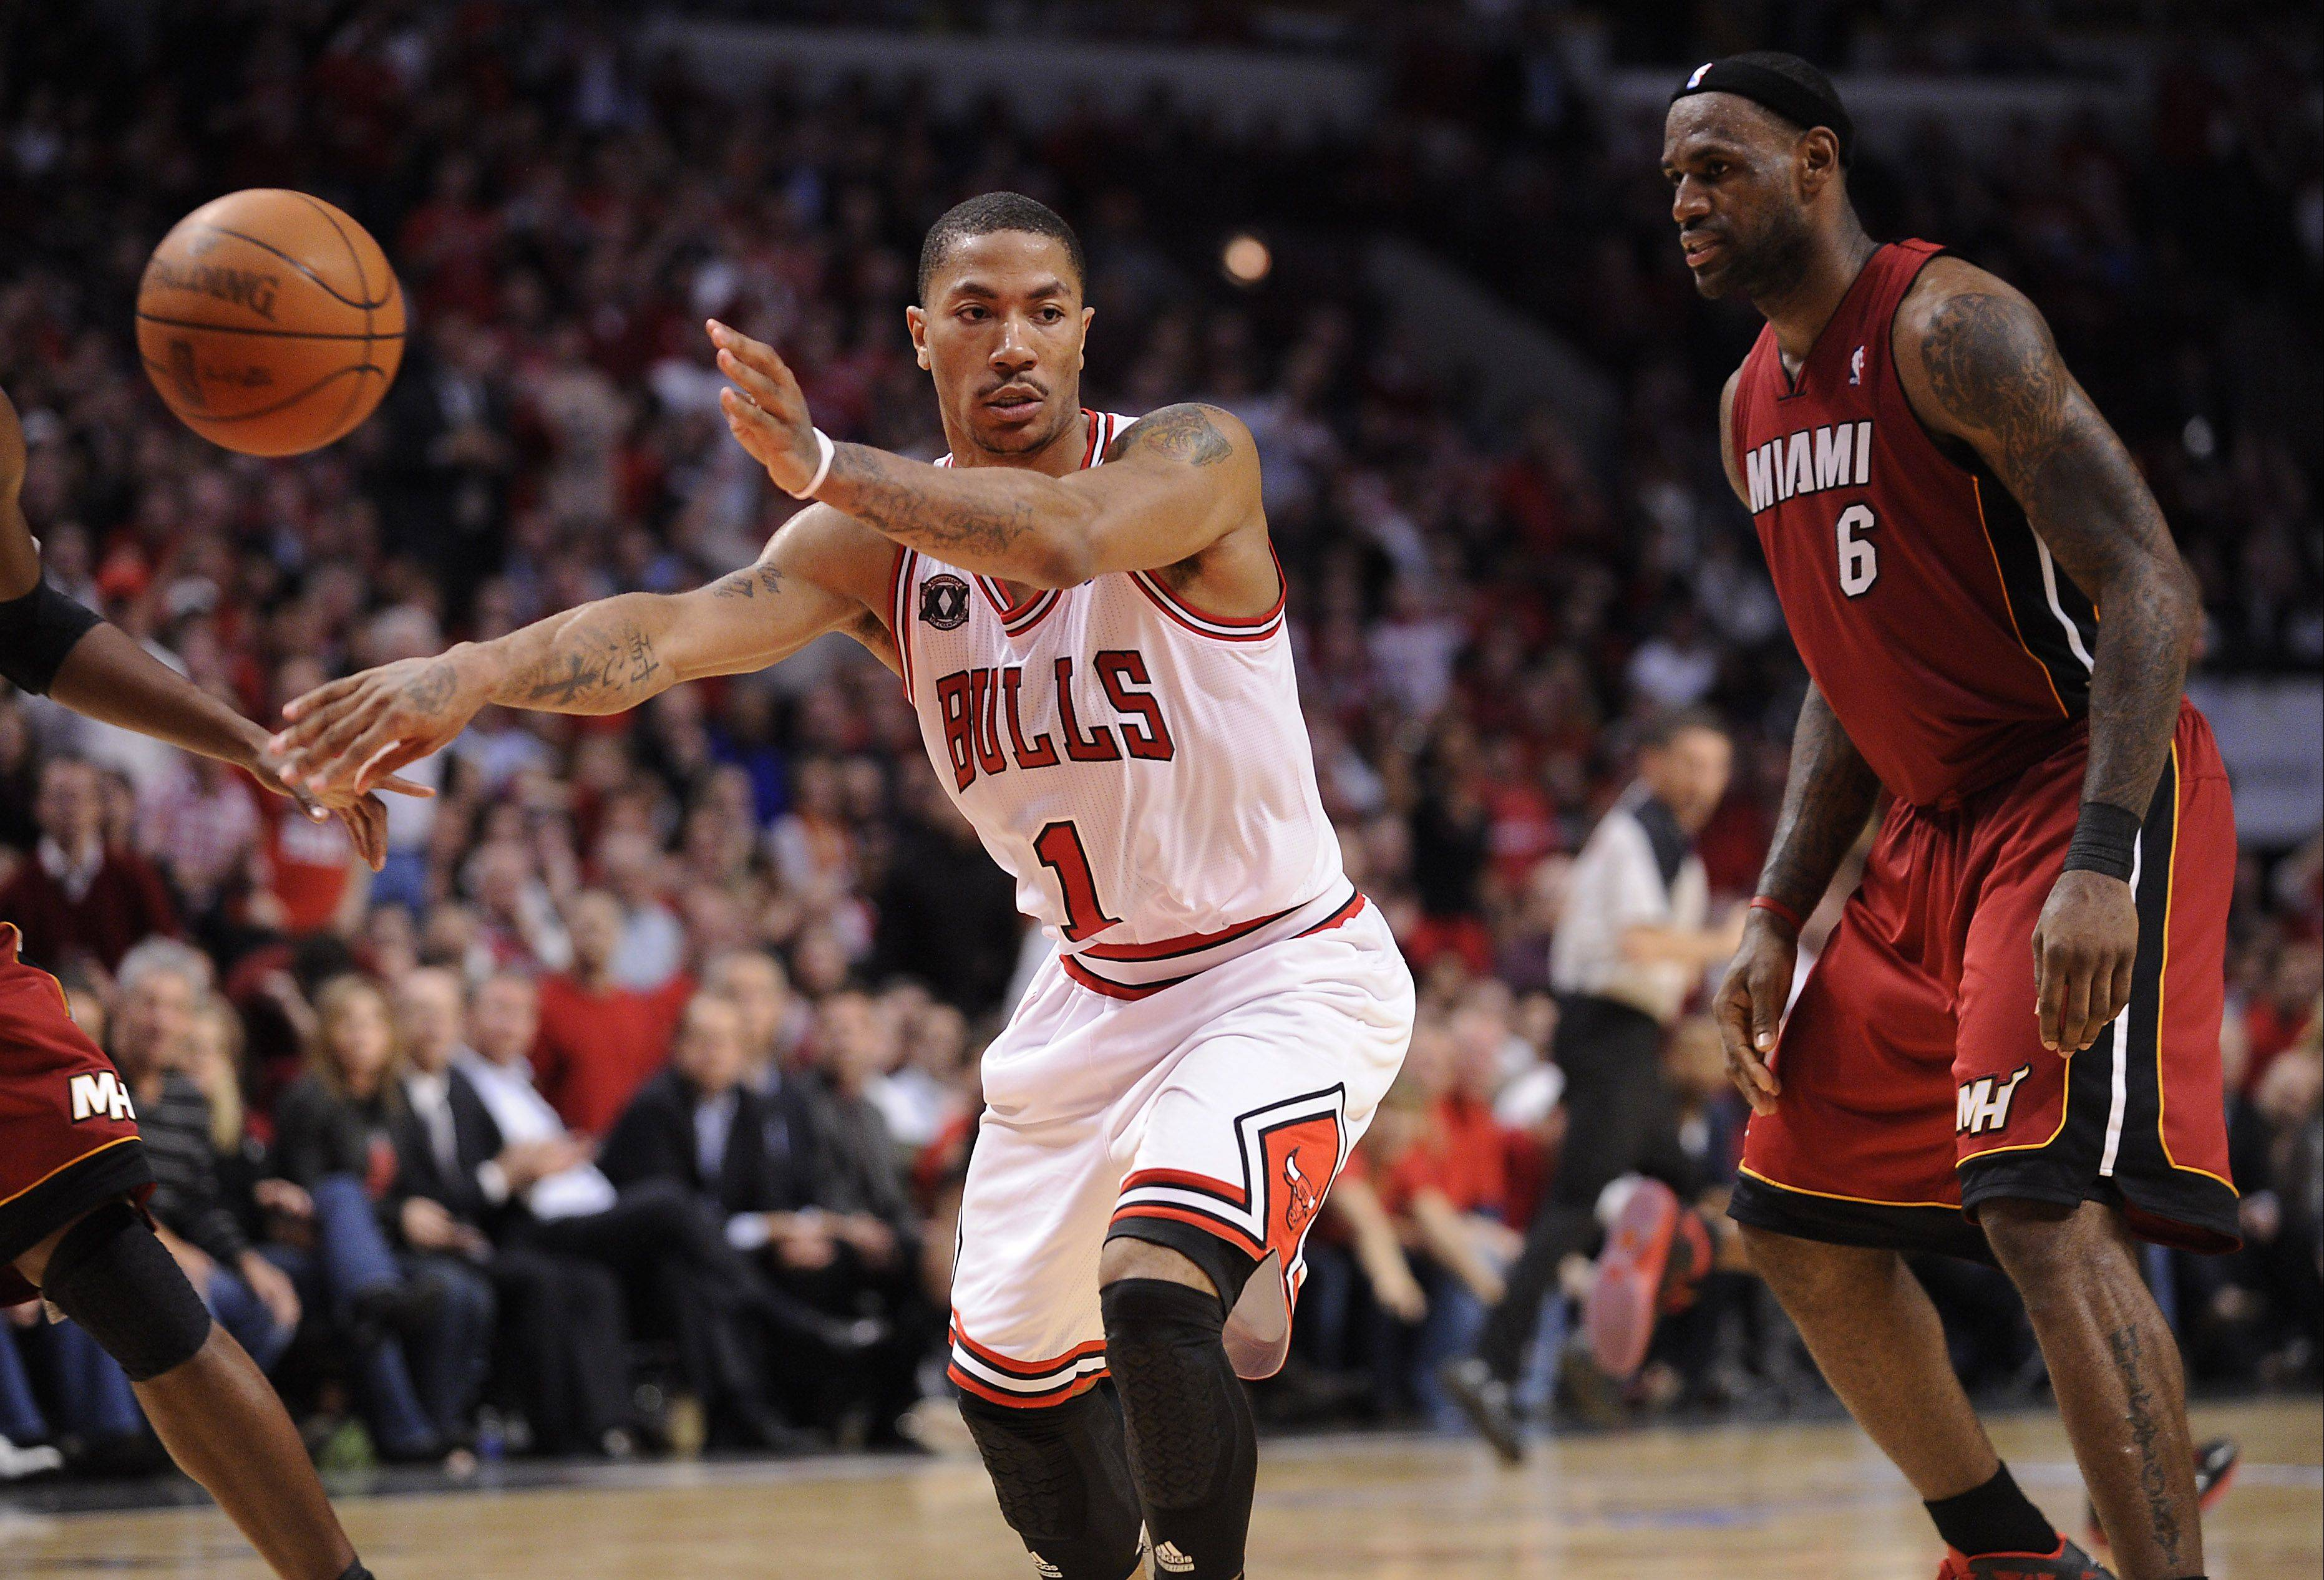 Bulls can improve because Rose will only get better